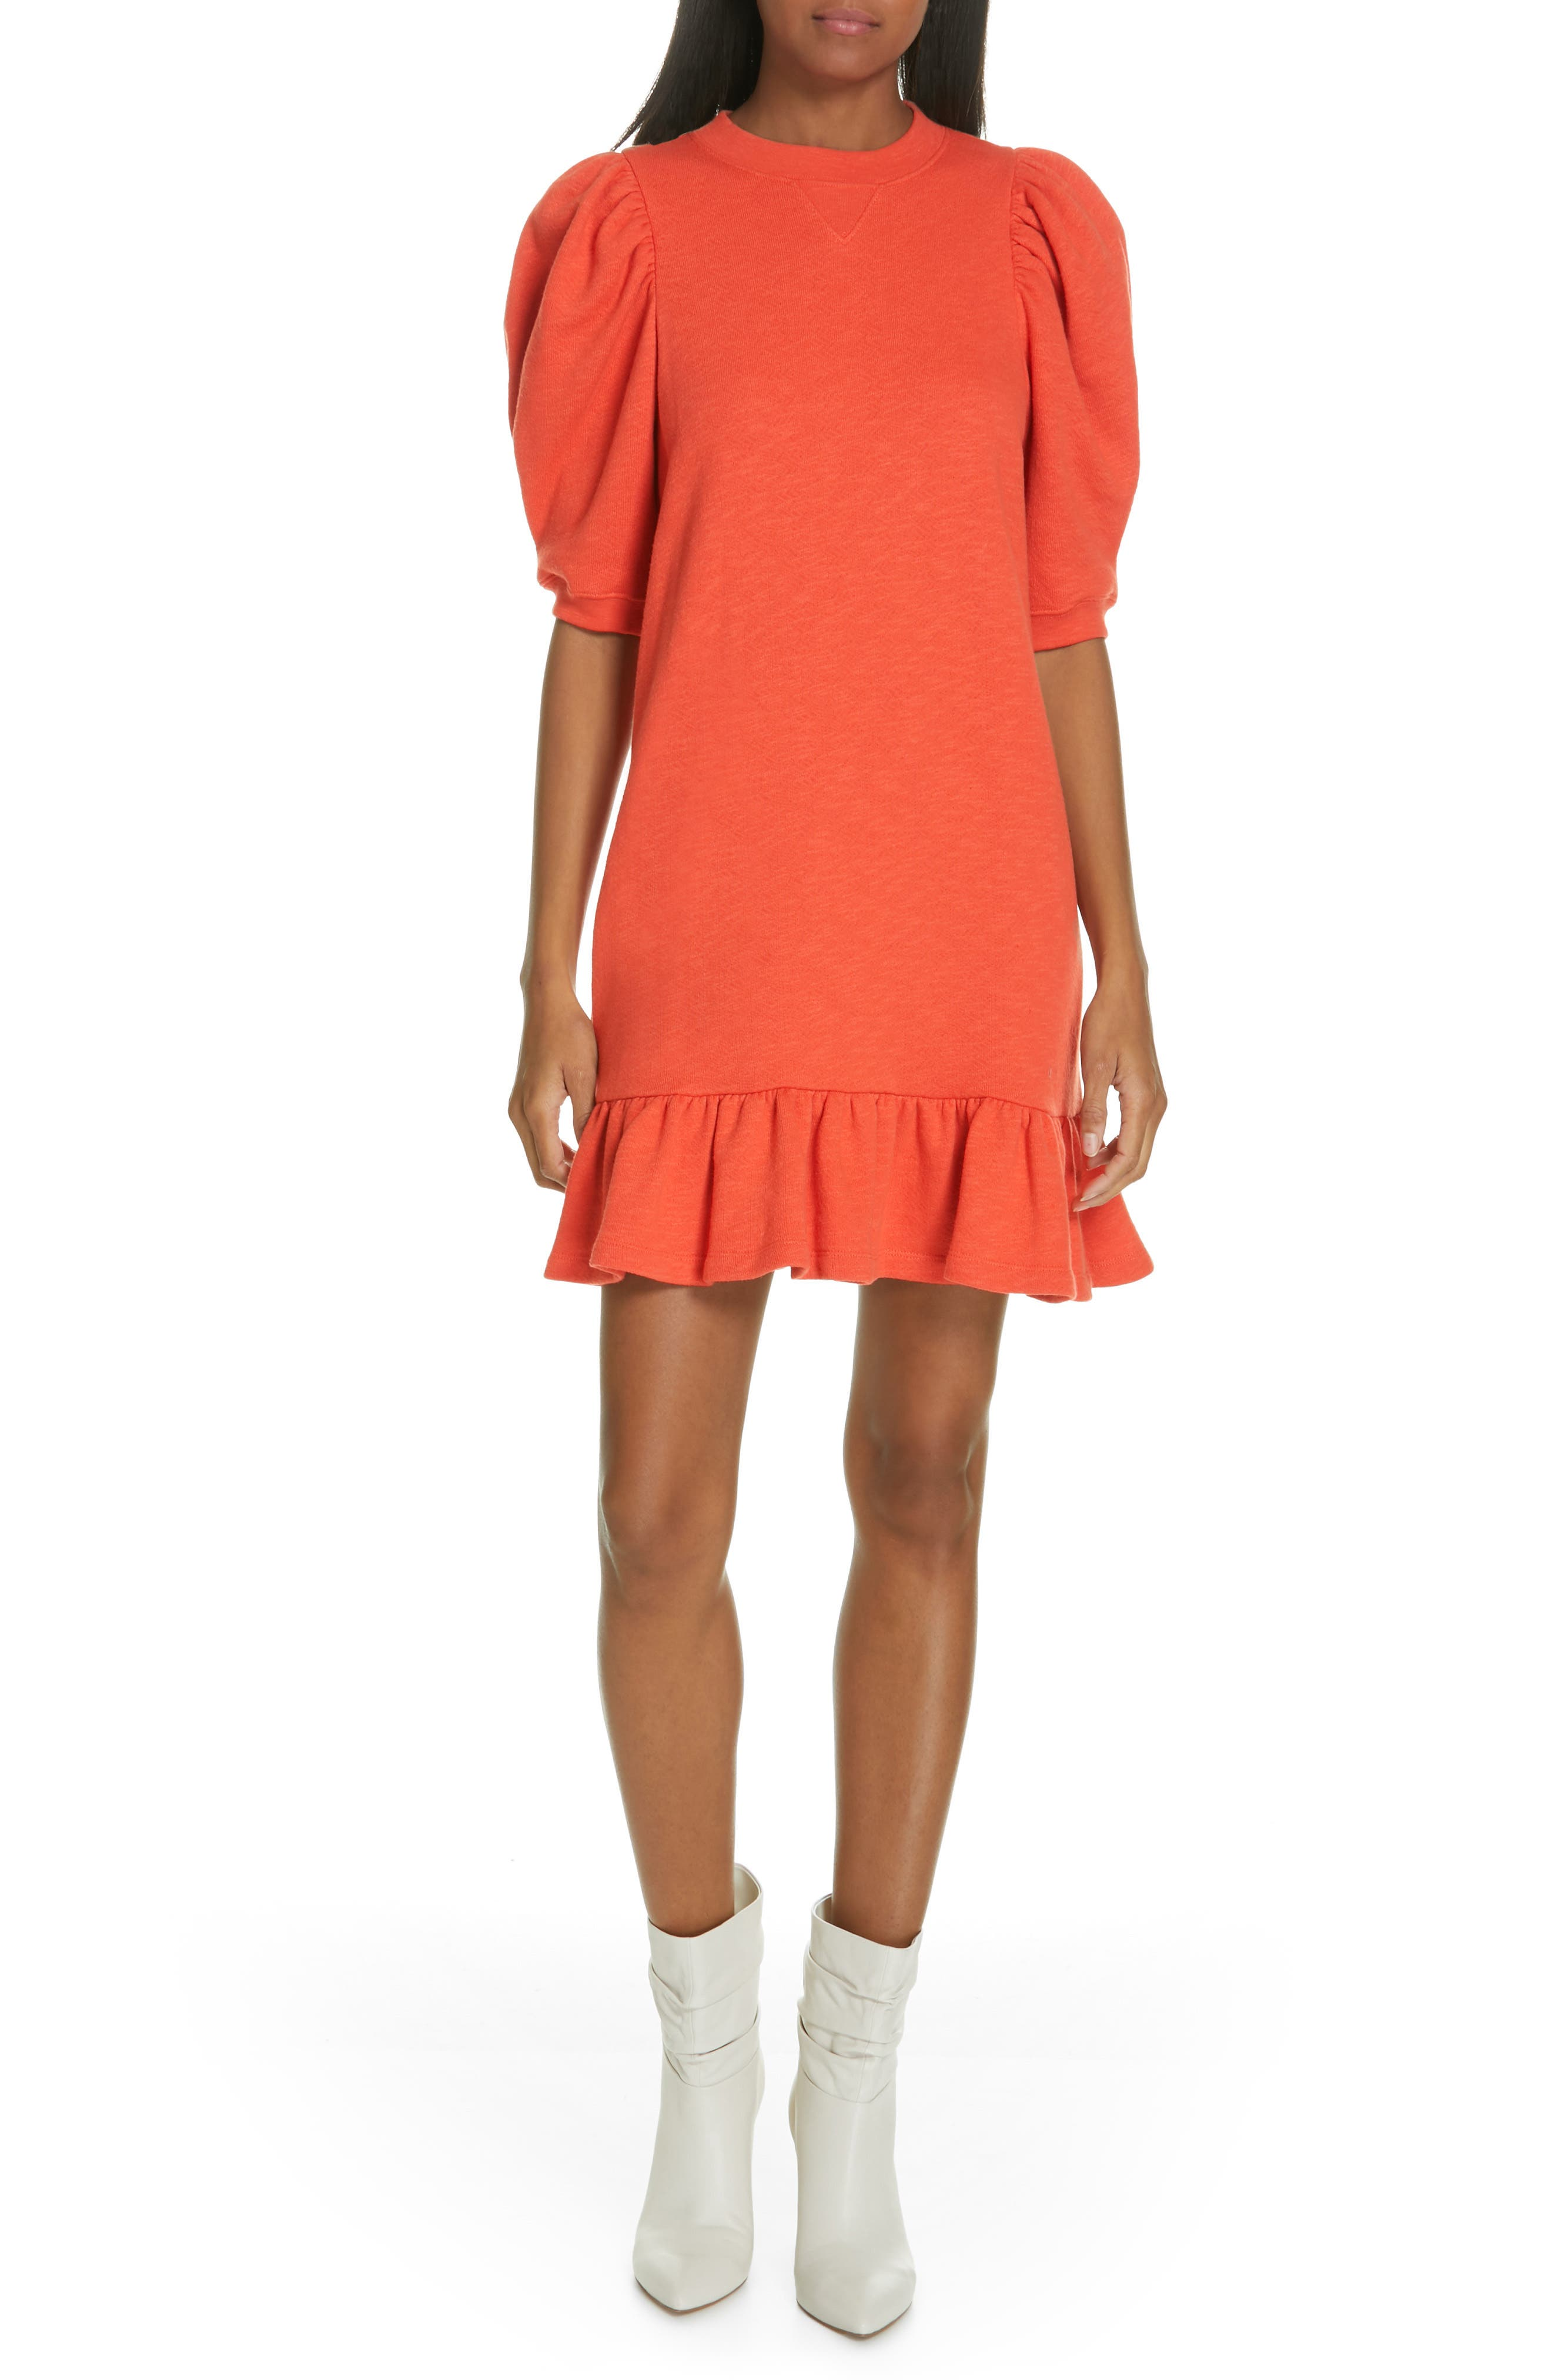 ULLA JOHNSON, Landry Puff Sleeve Sweatshirt Dress, Main thumbnail 1, color, CHILI